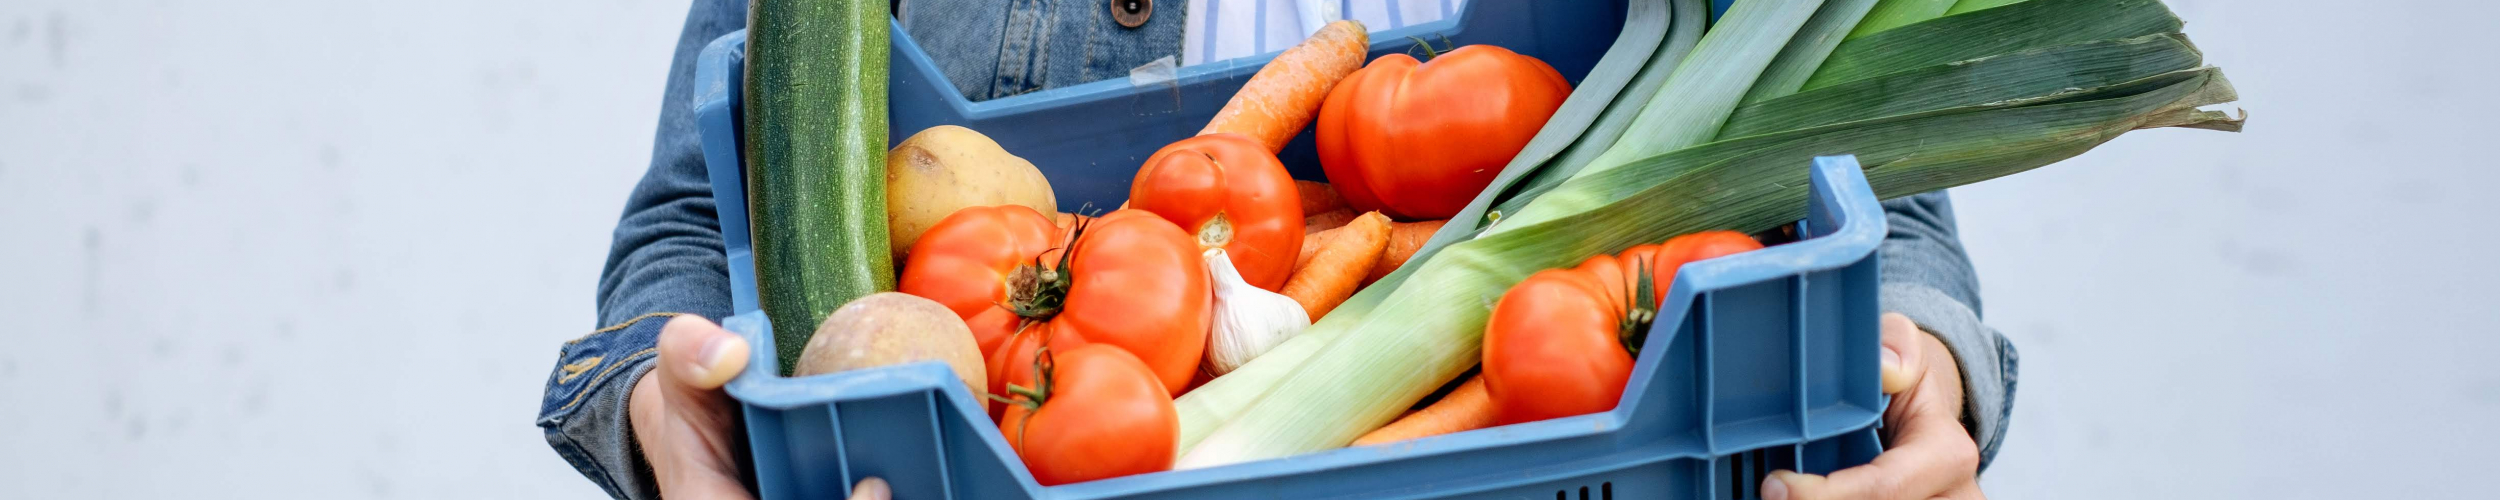 Fight against food waste